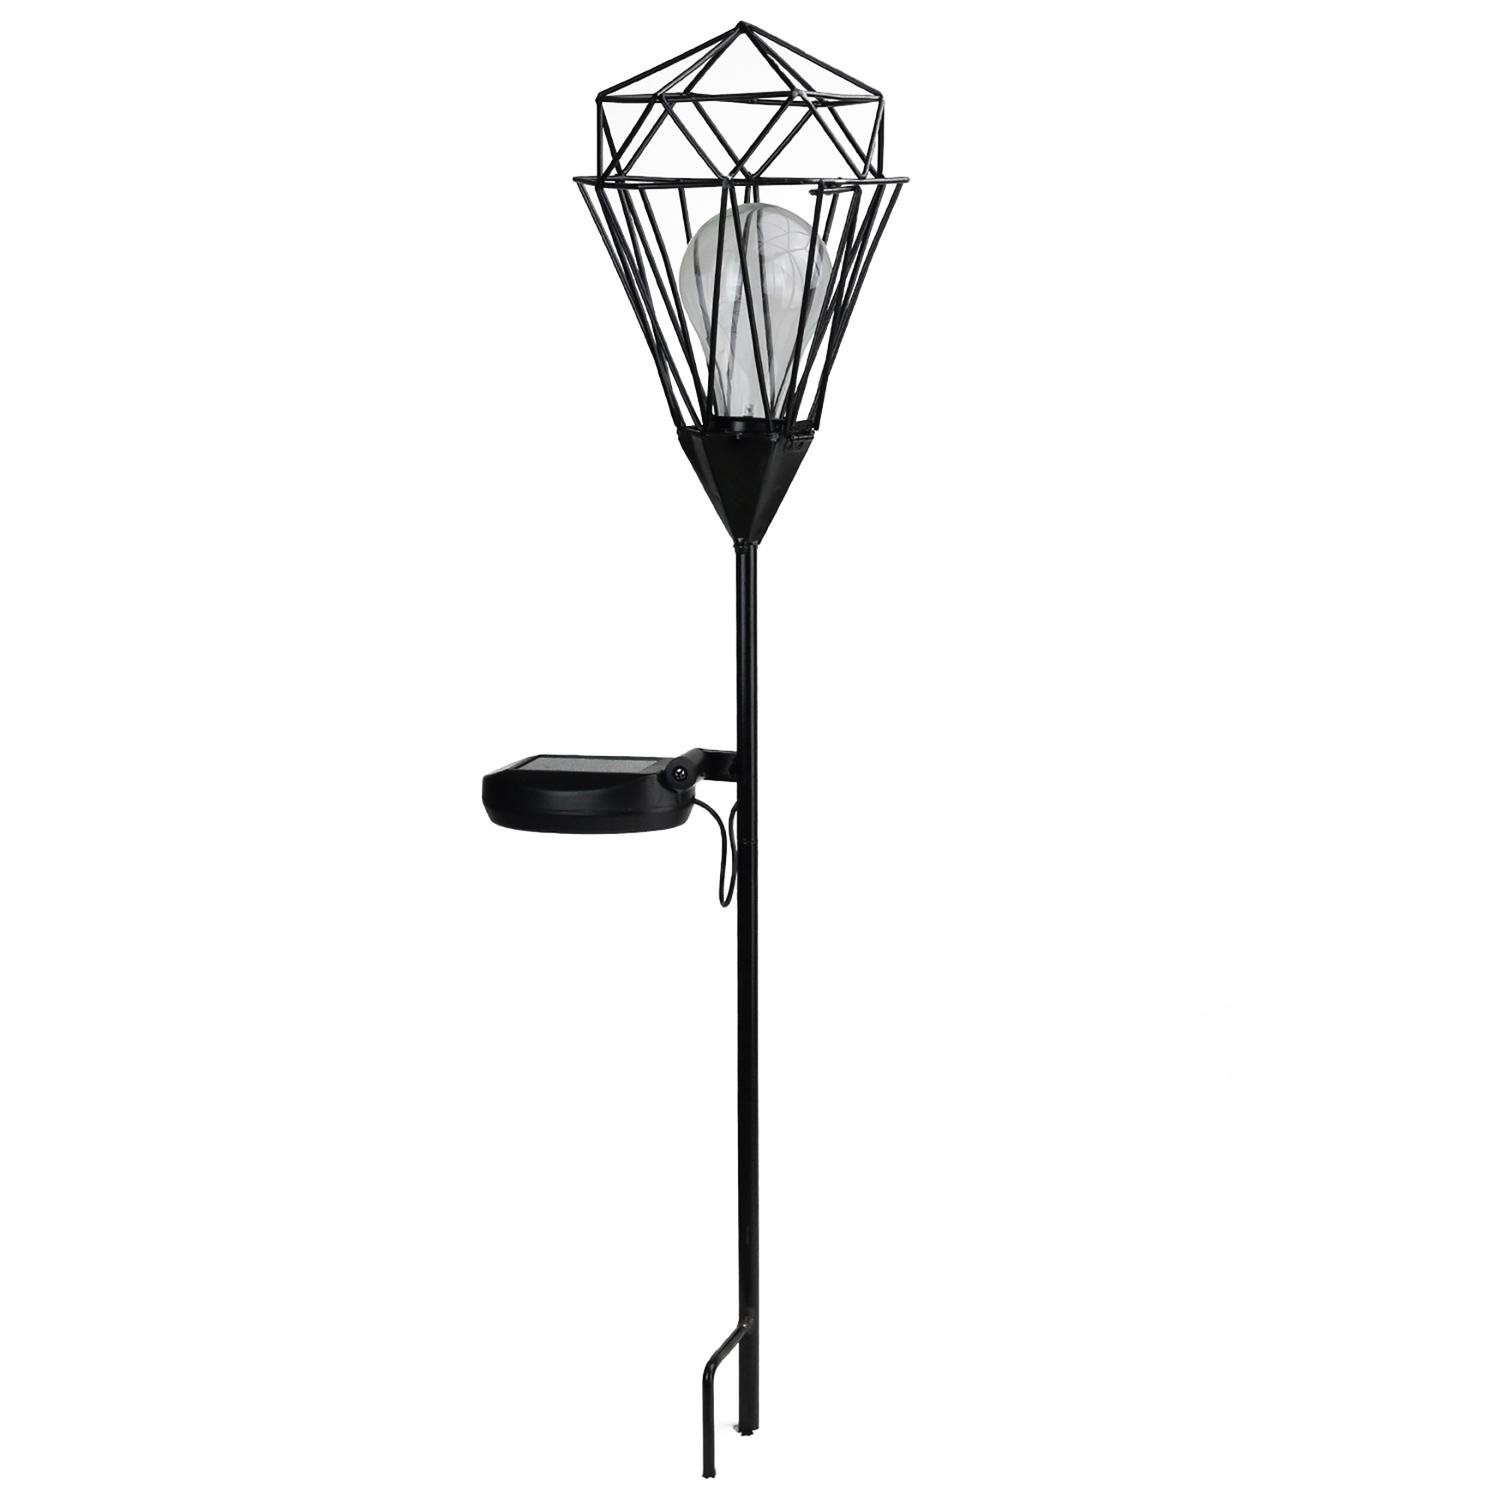 Northlight Solar Powered LED Outdoor Patio Metal Lantern with Garden Stake, 25.5'', Black